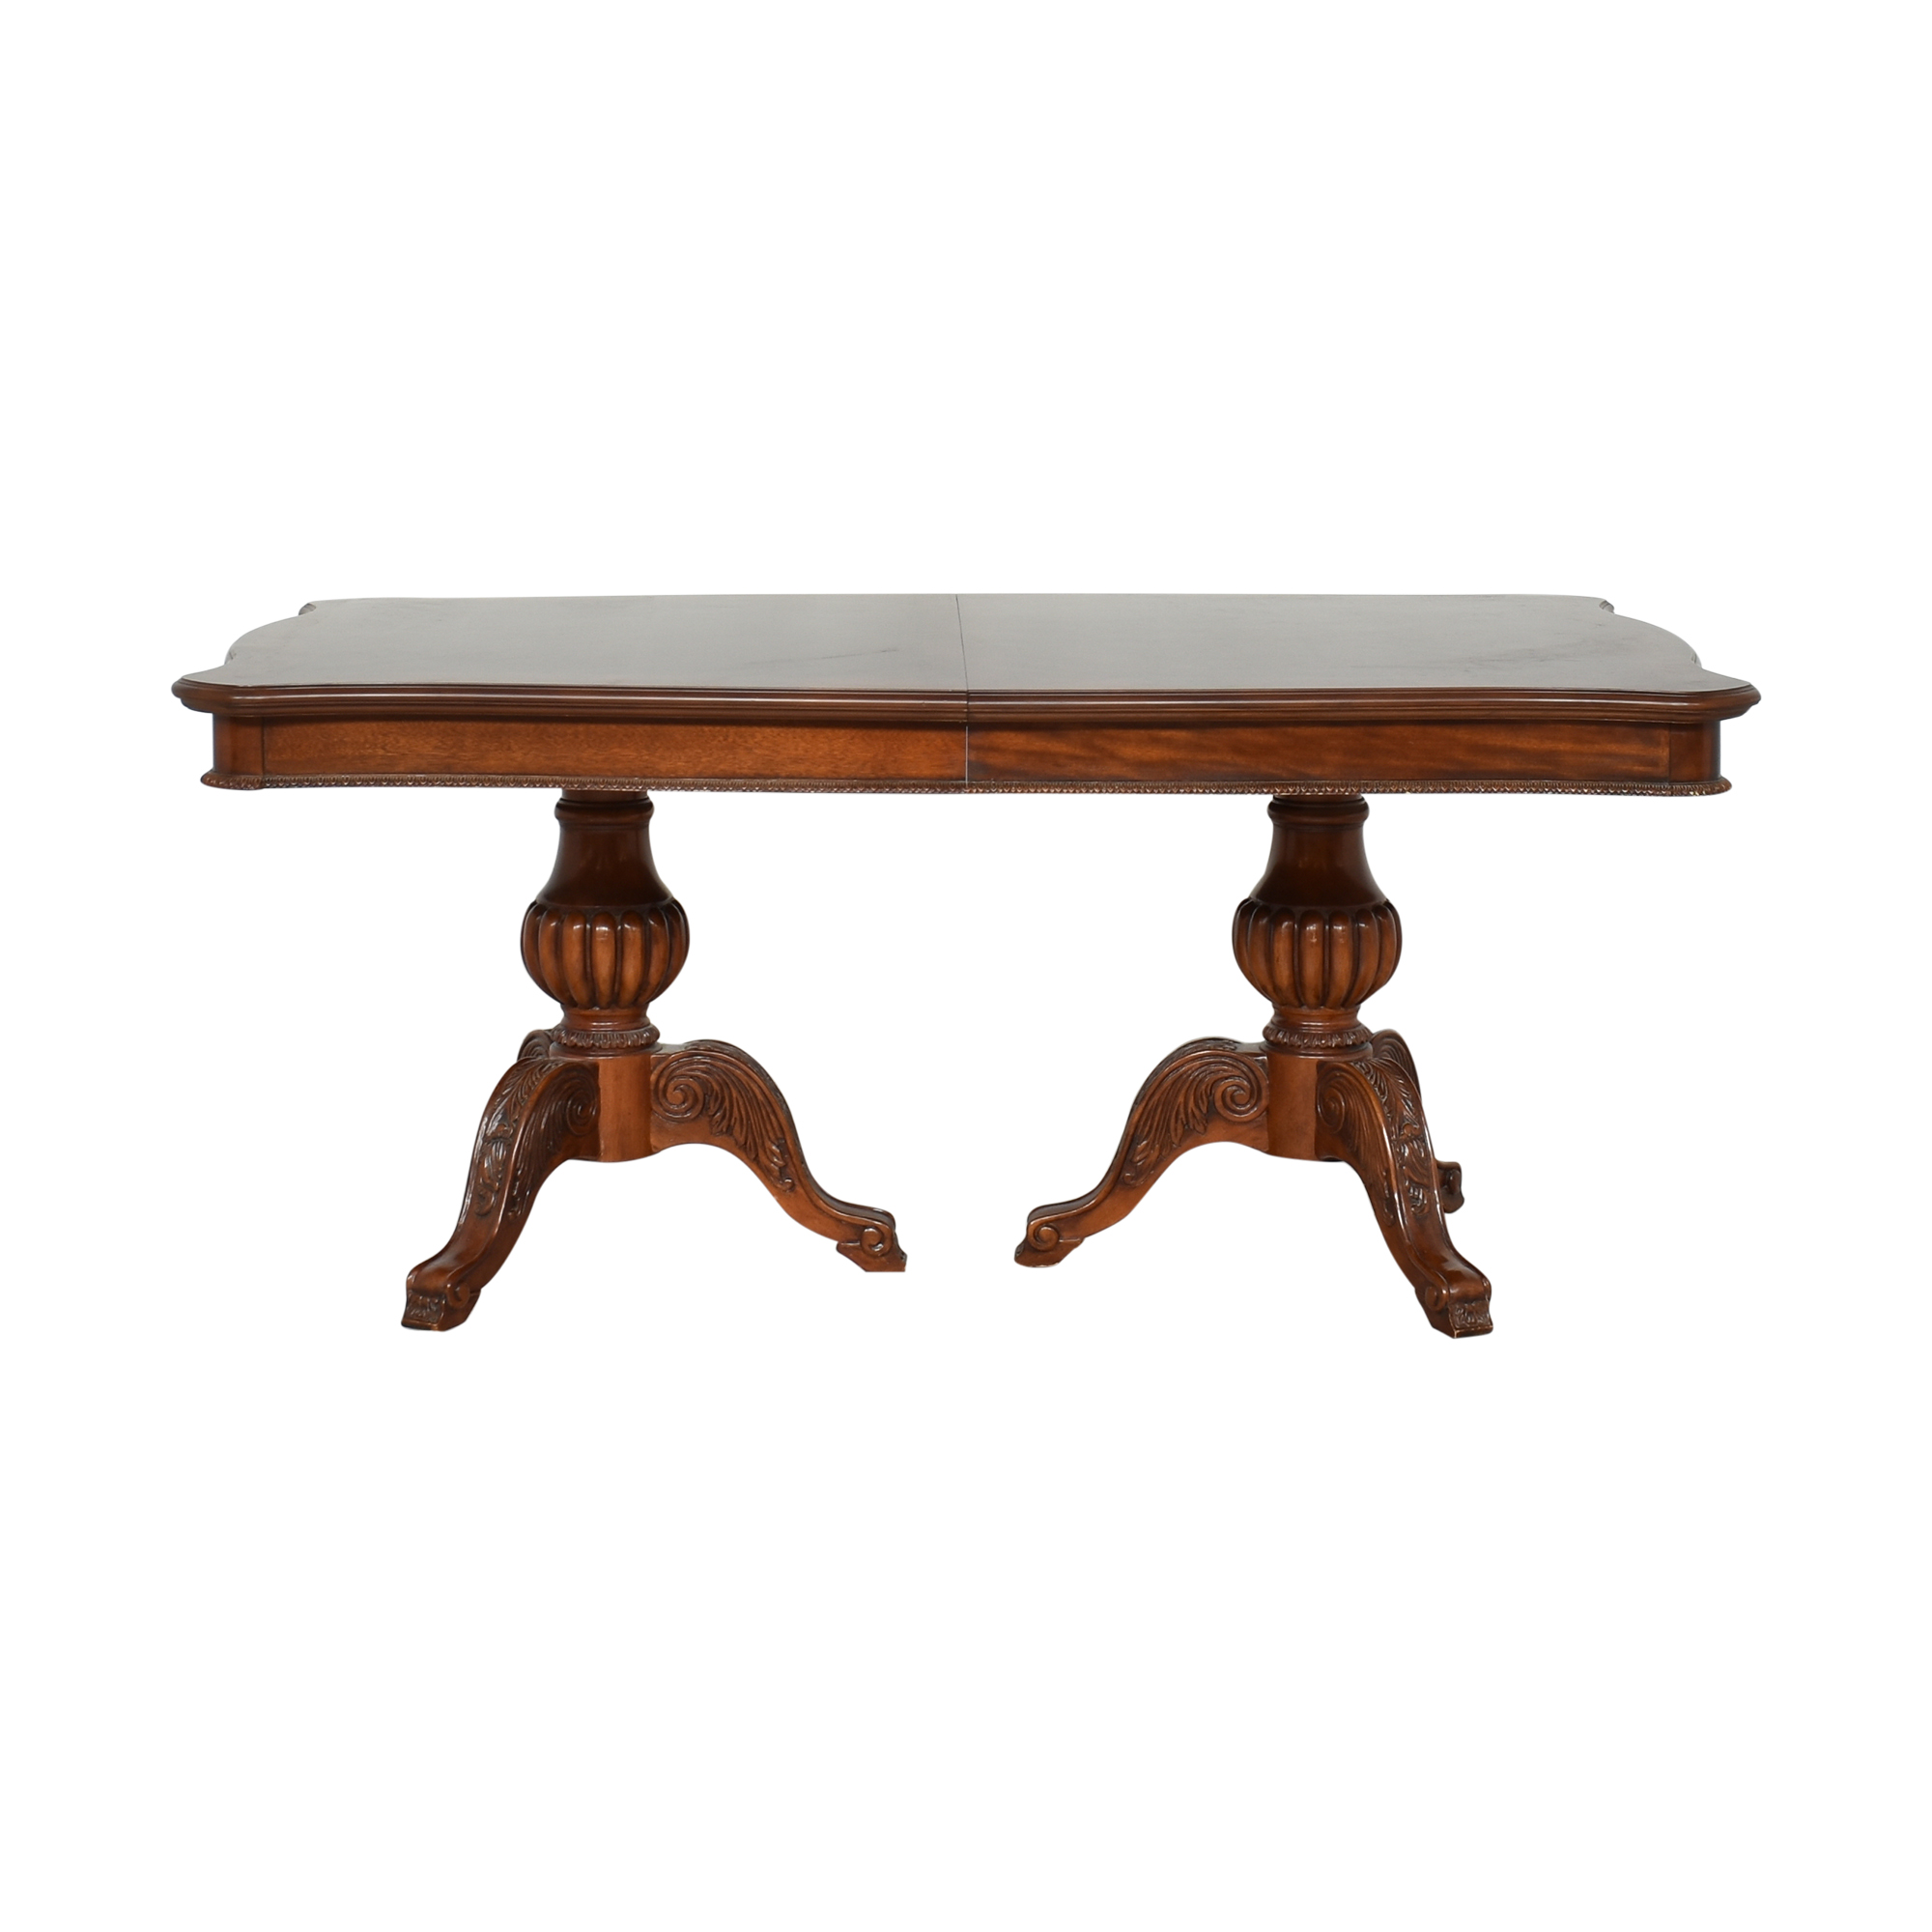 Raymour & Flanigan Raymour & Flanigan Double Pedestal Dining Table Dinner Tables